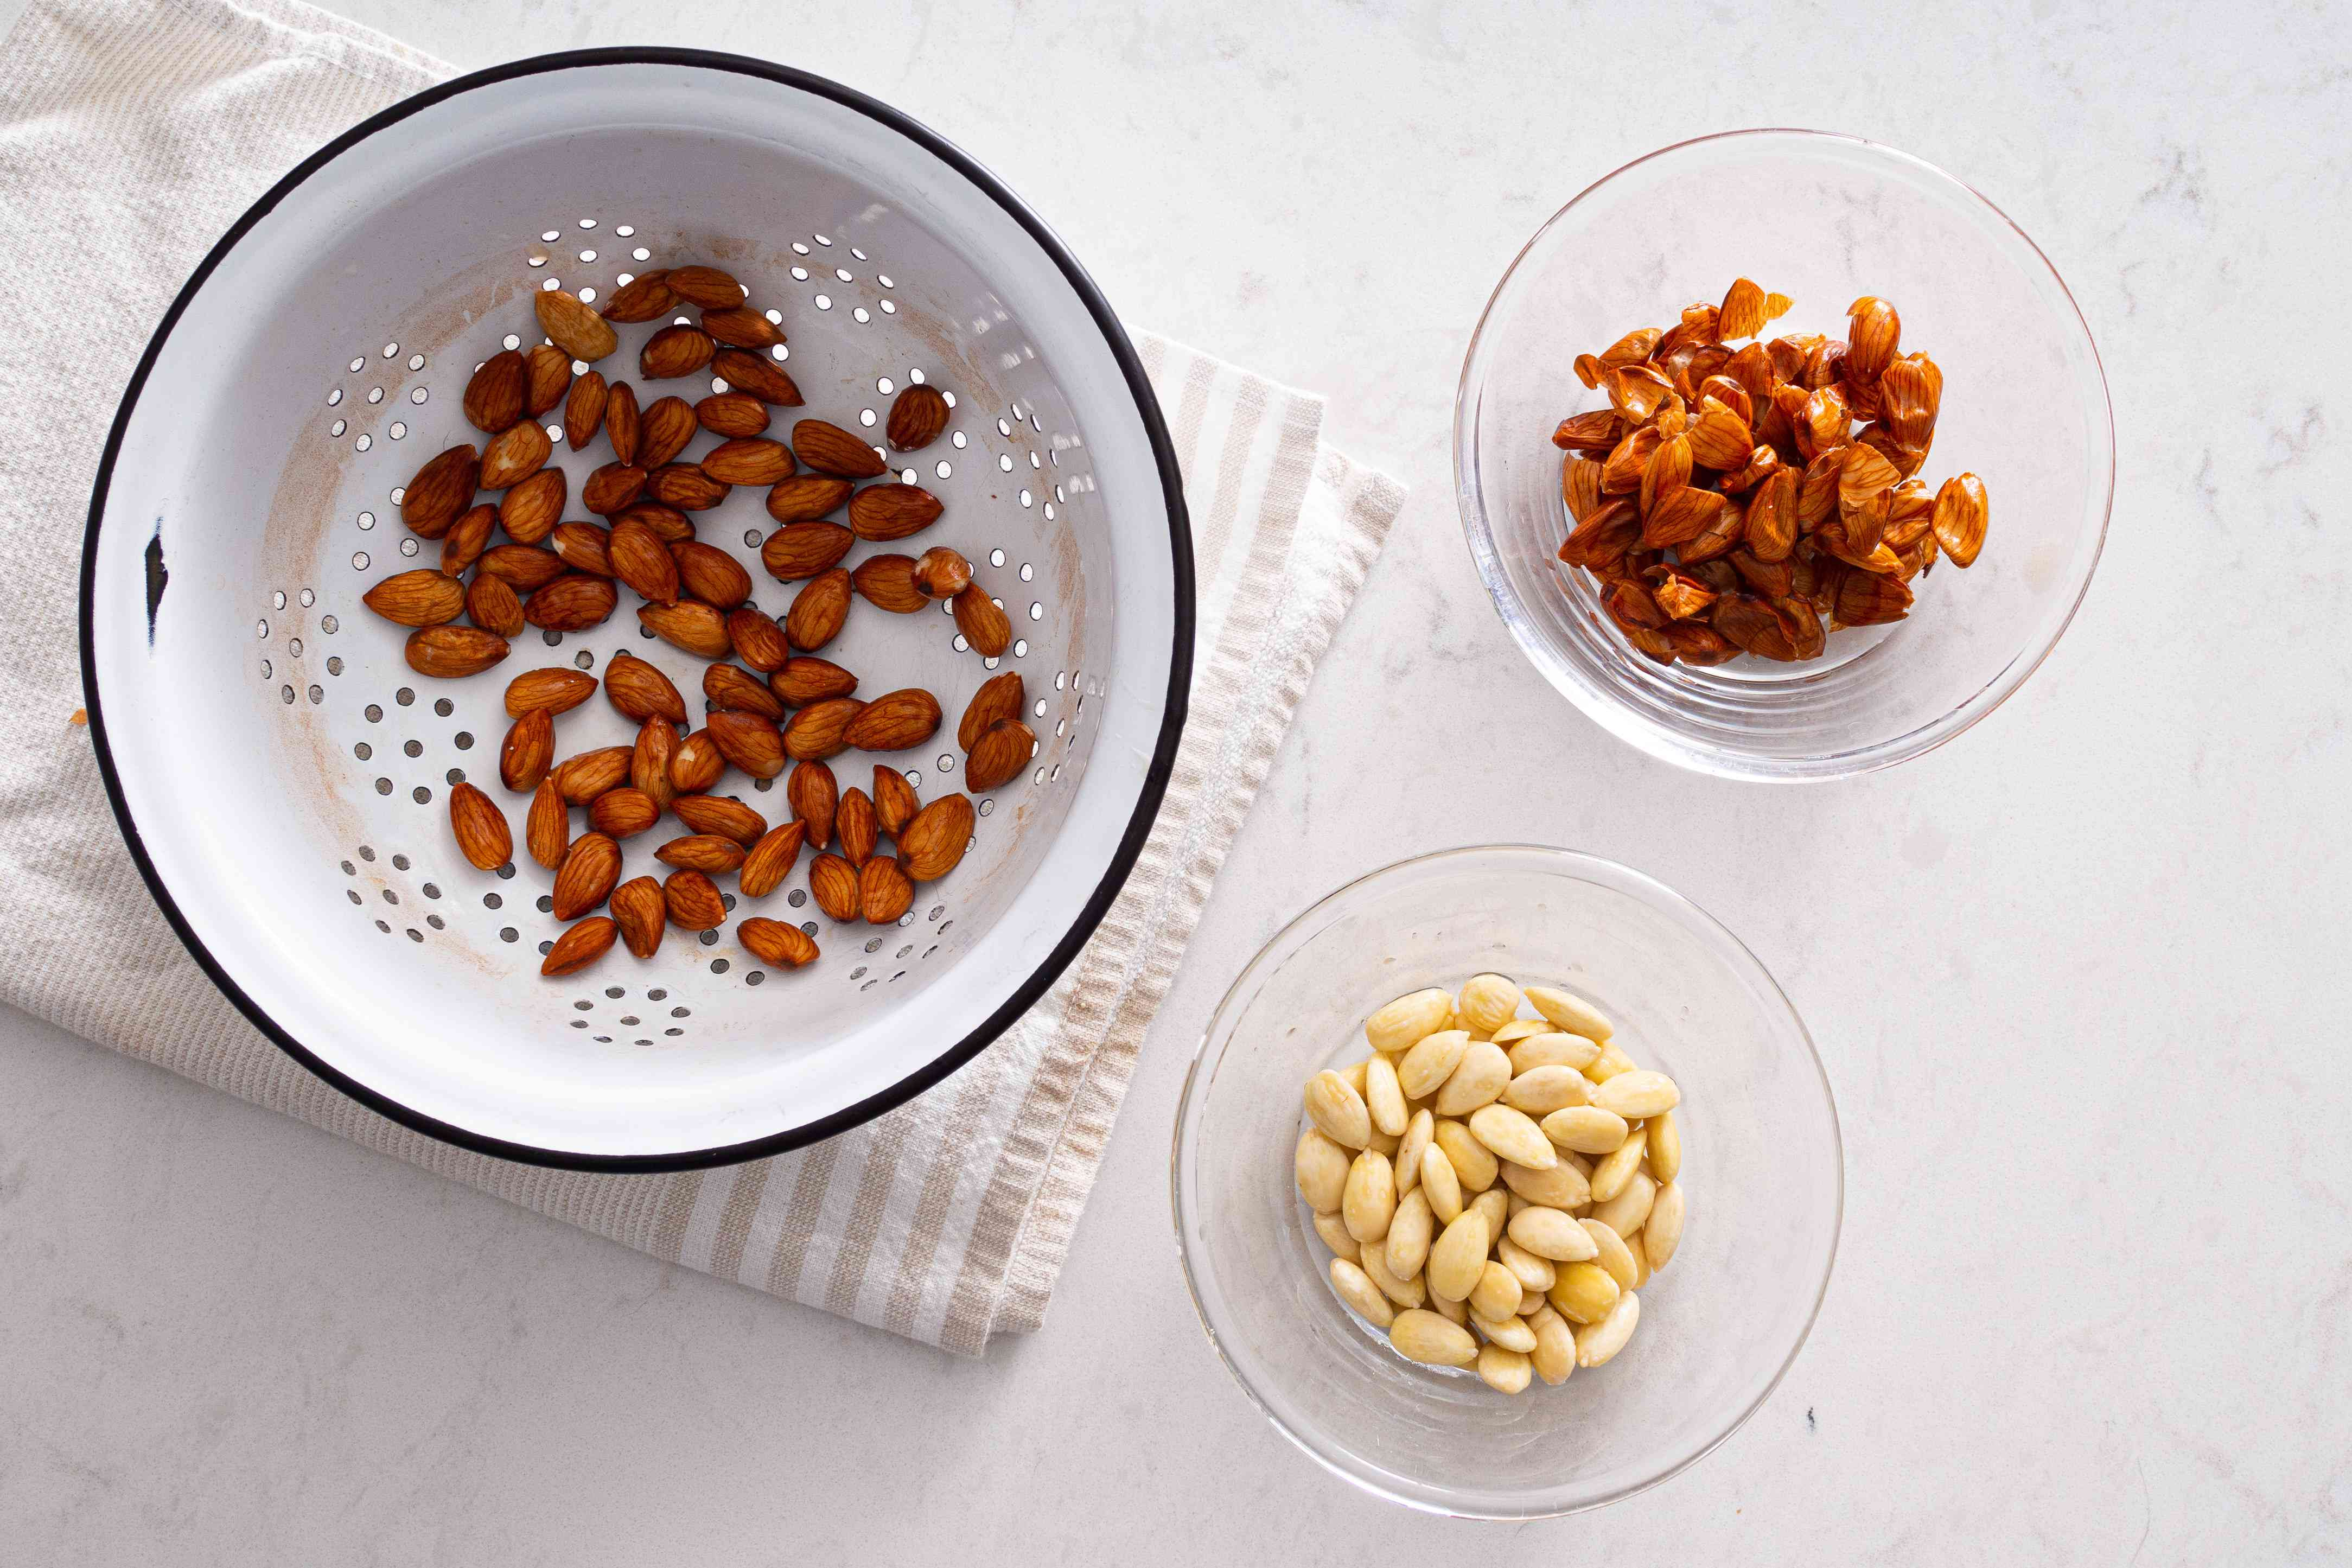 almonds with the peels removed